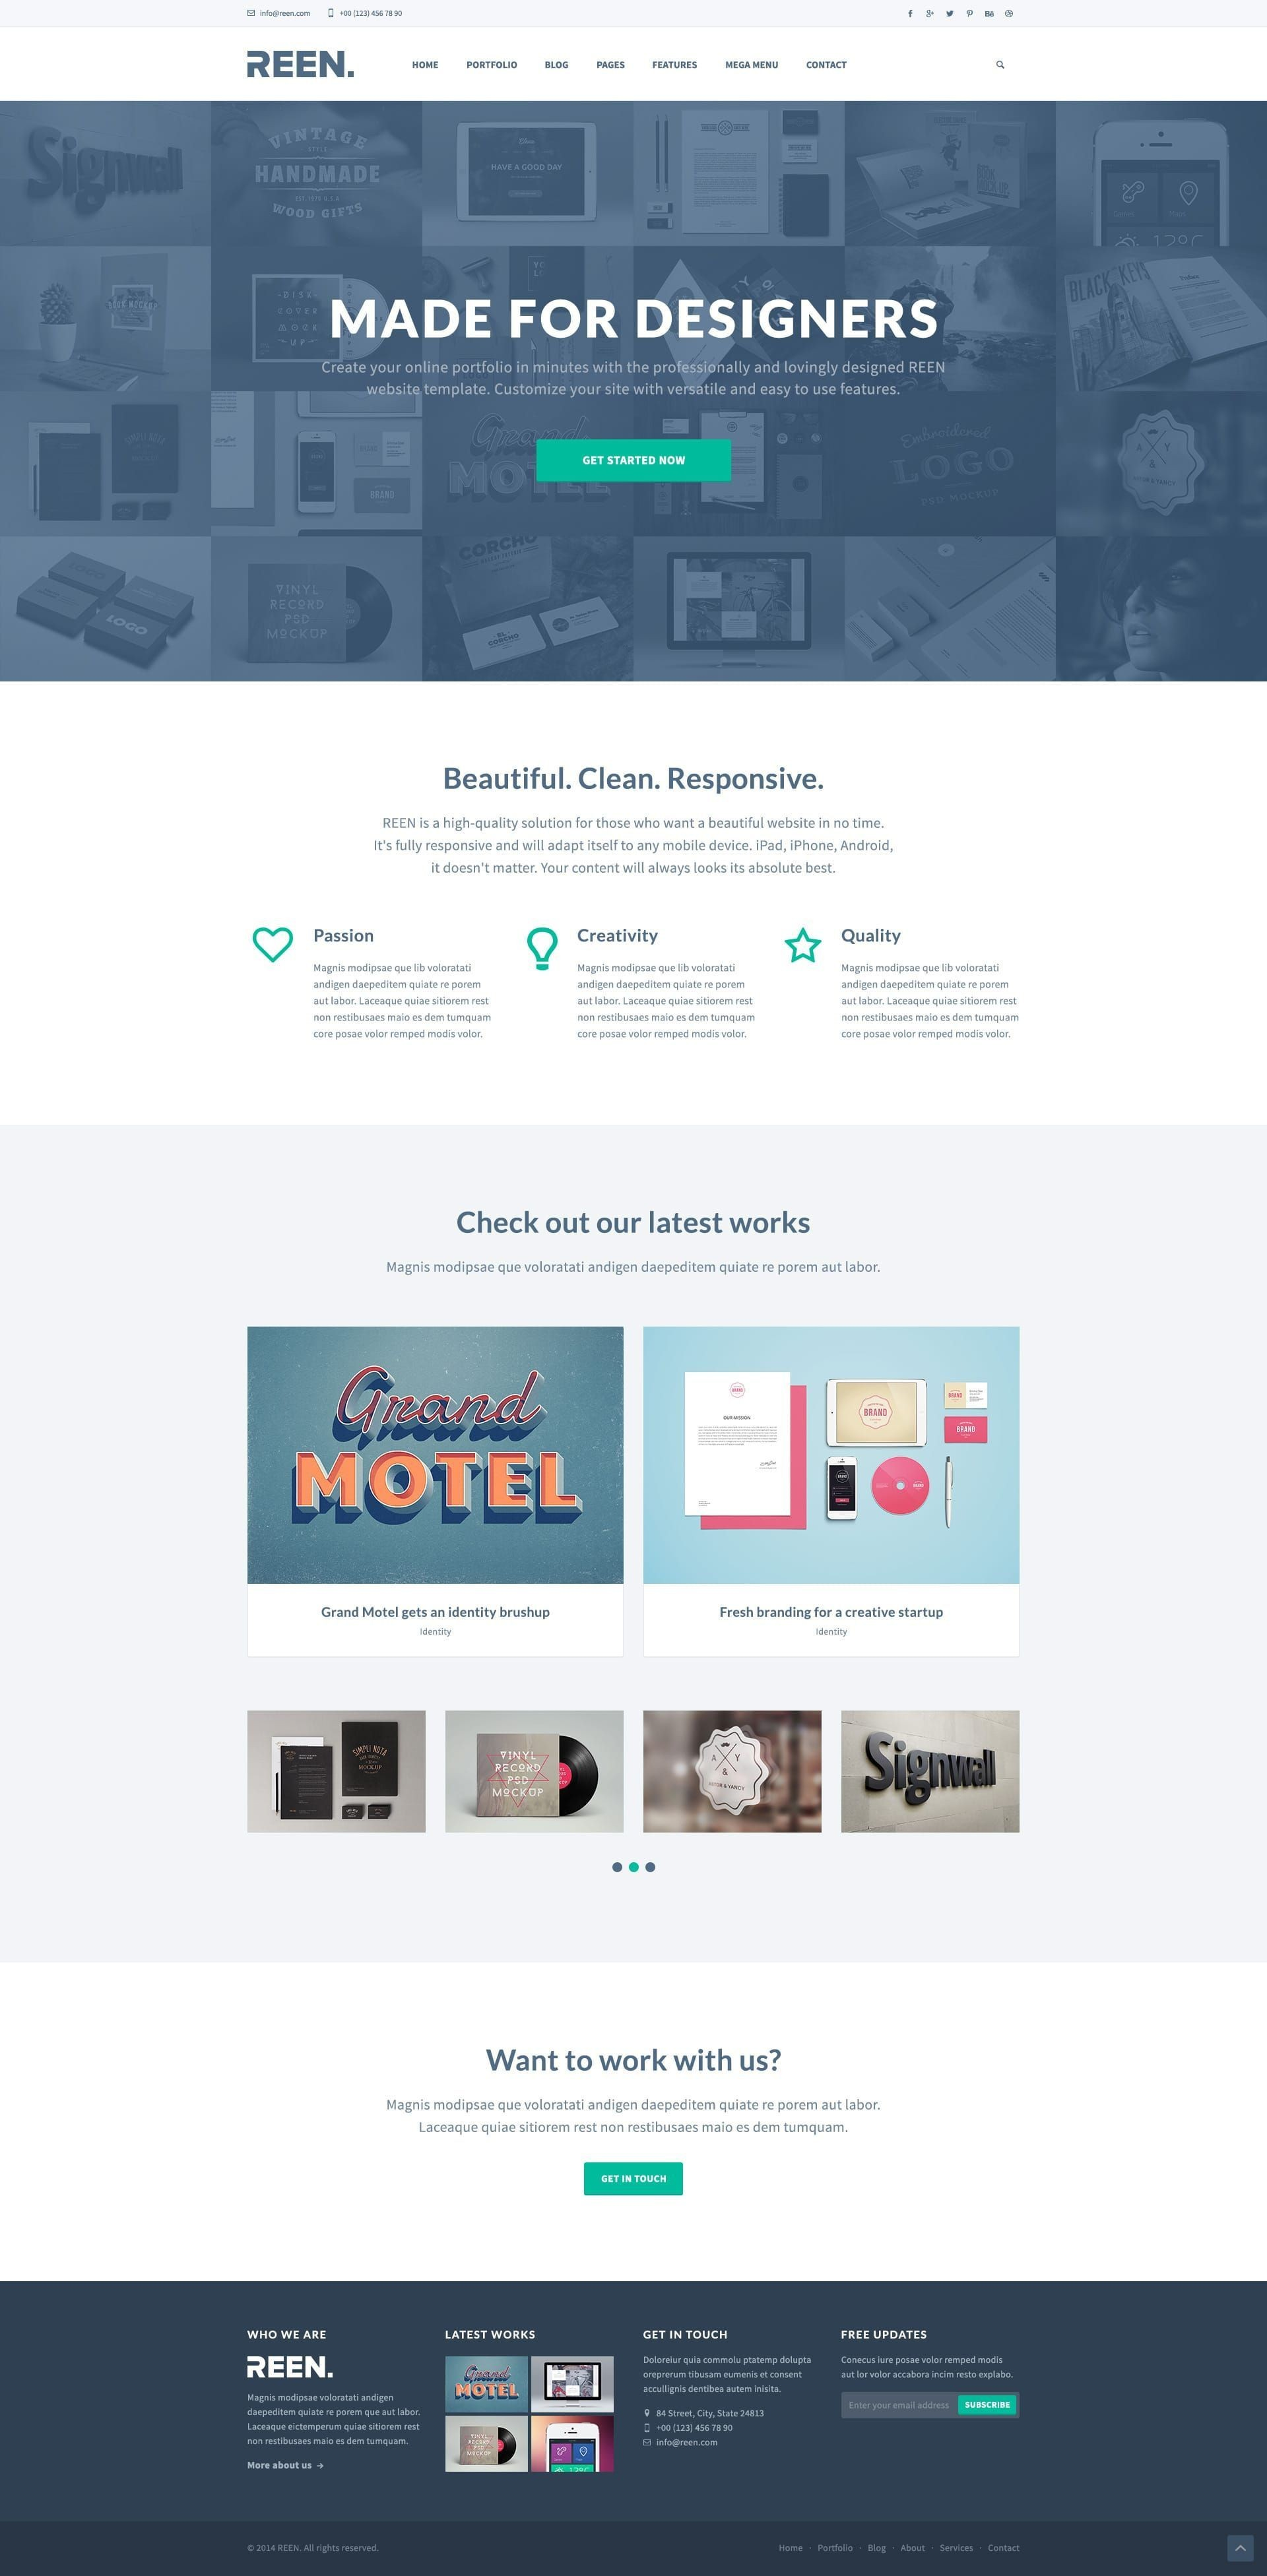 000 Sensational Website Template Free Download High Definition  Online Shopping Colorlib New Wordpres Html5 For Busines1920